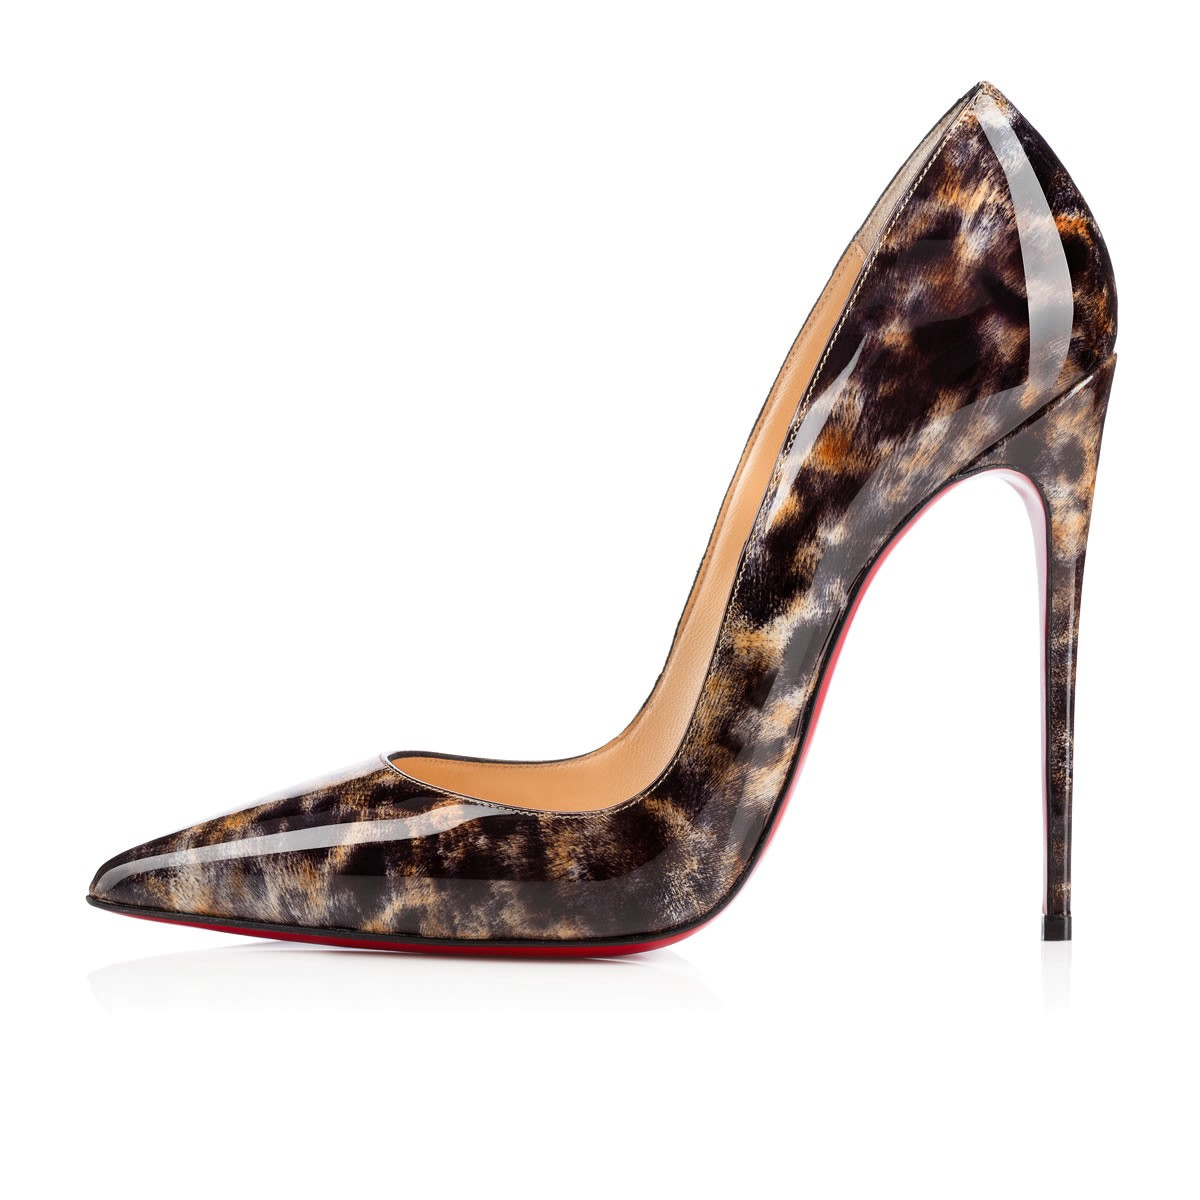 216e1d0824c9 CHRISTIAN LOUBOUTIN SO KATE BLACK VERNIS MOUCHETE PATENT - Reed ...